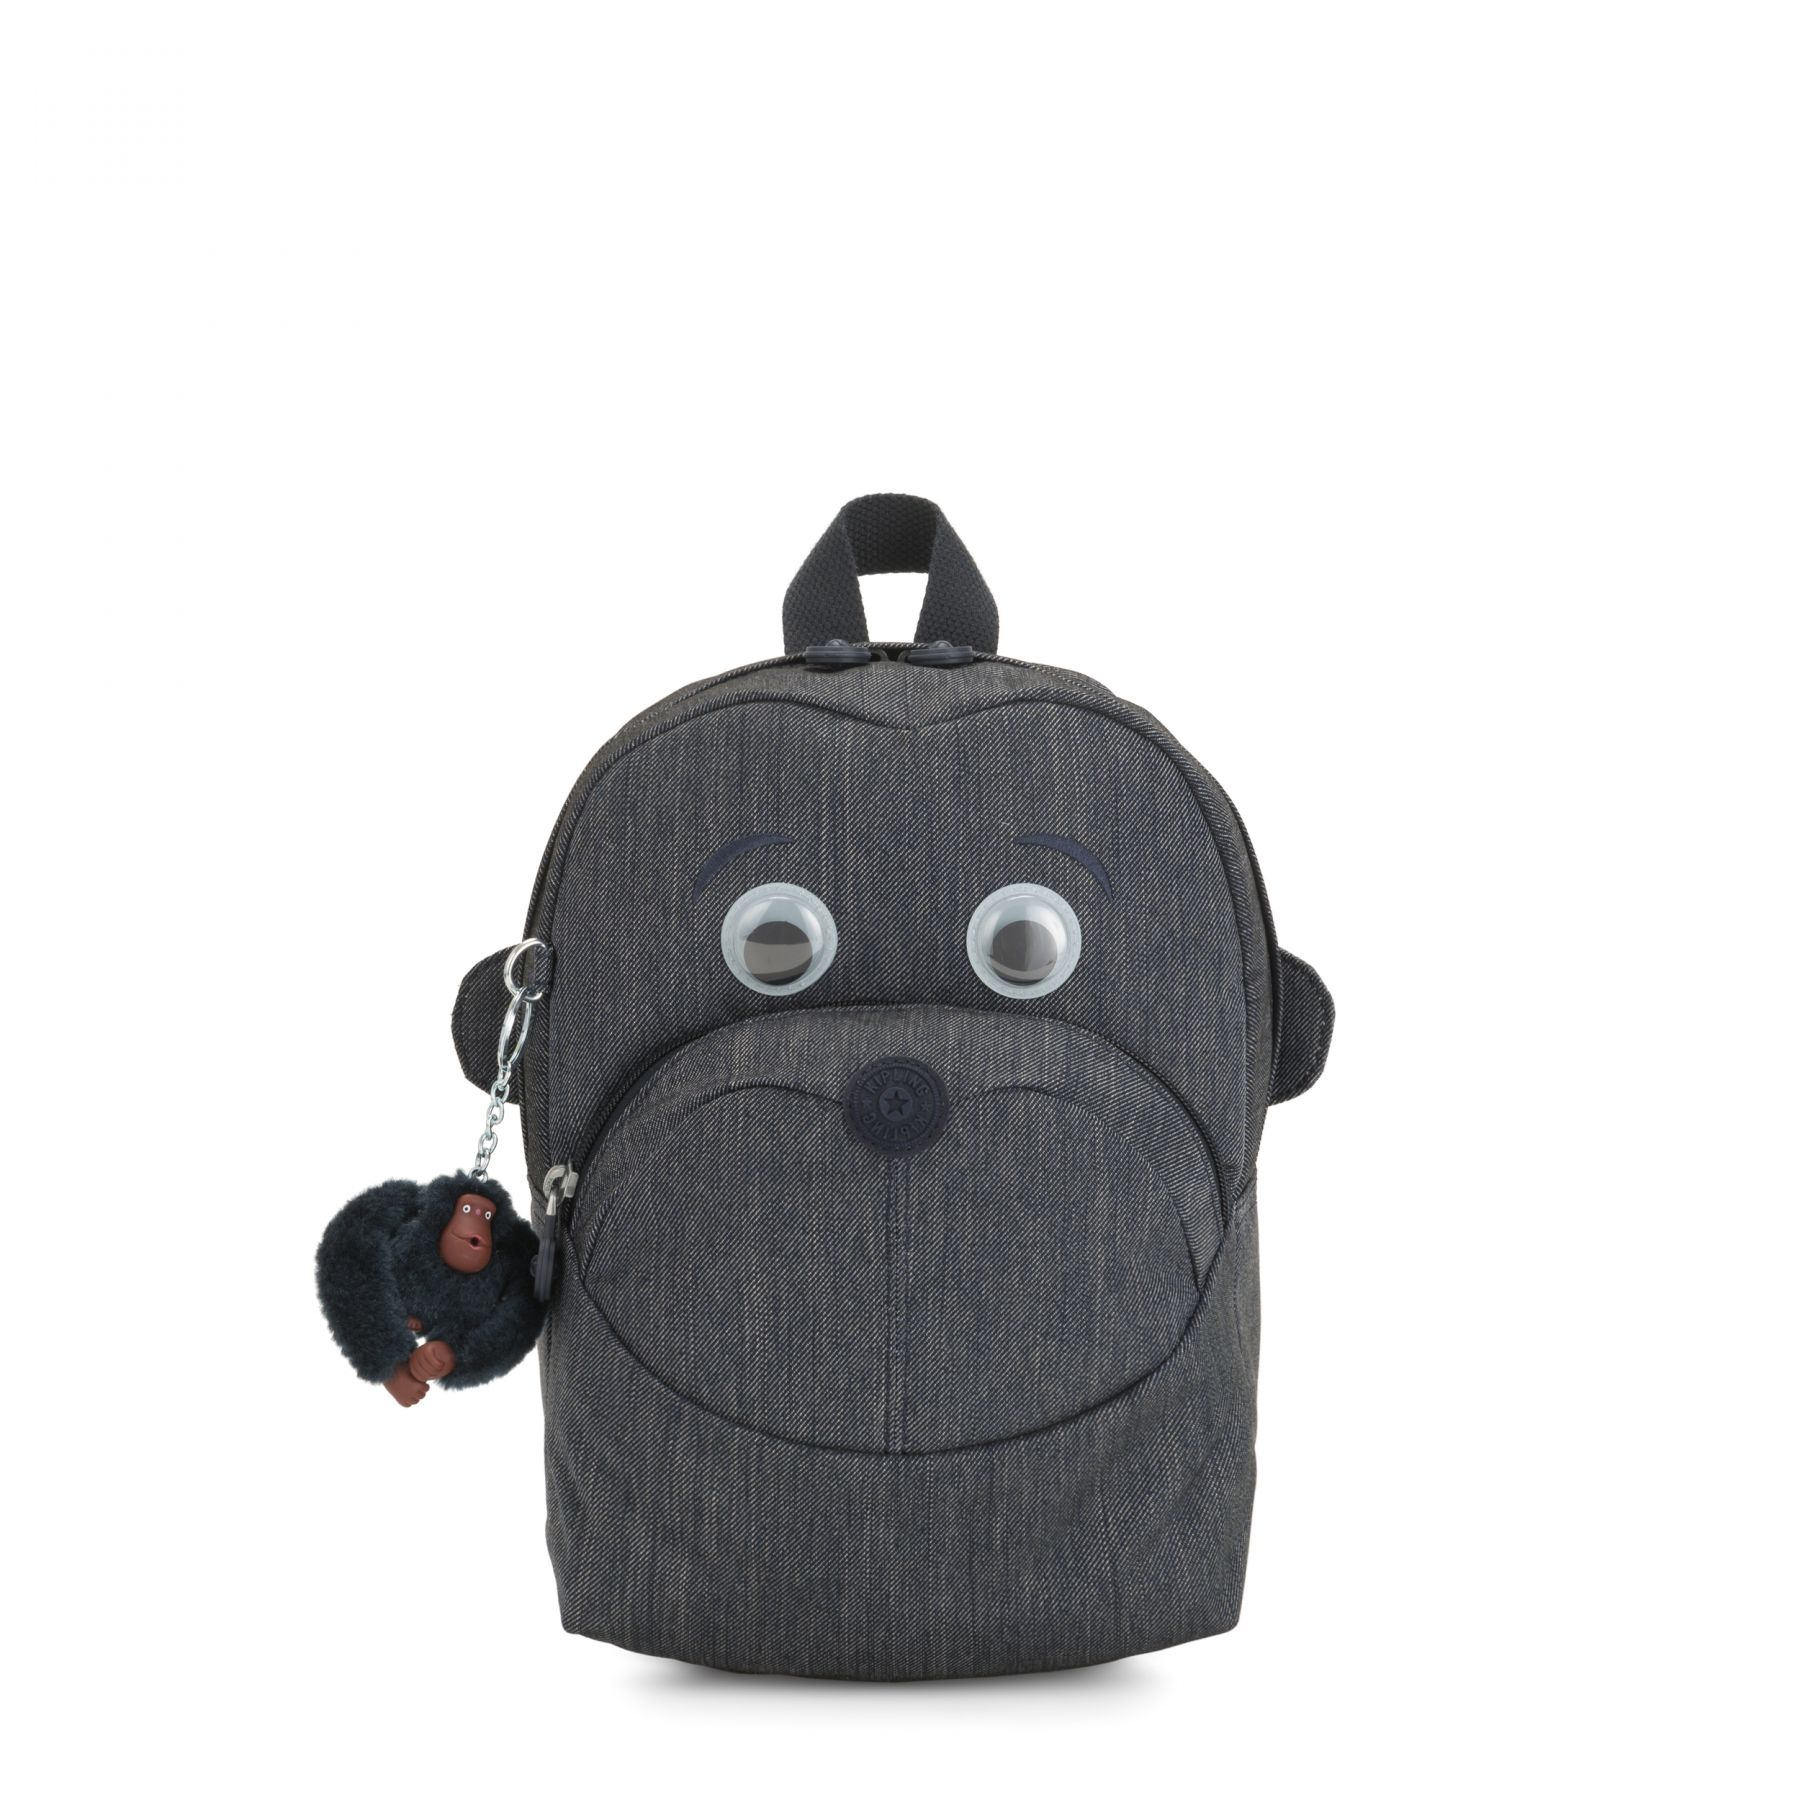 FASTER Latest Backpacks by Kipling - Front view